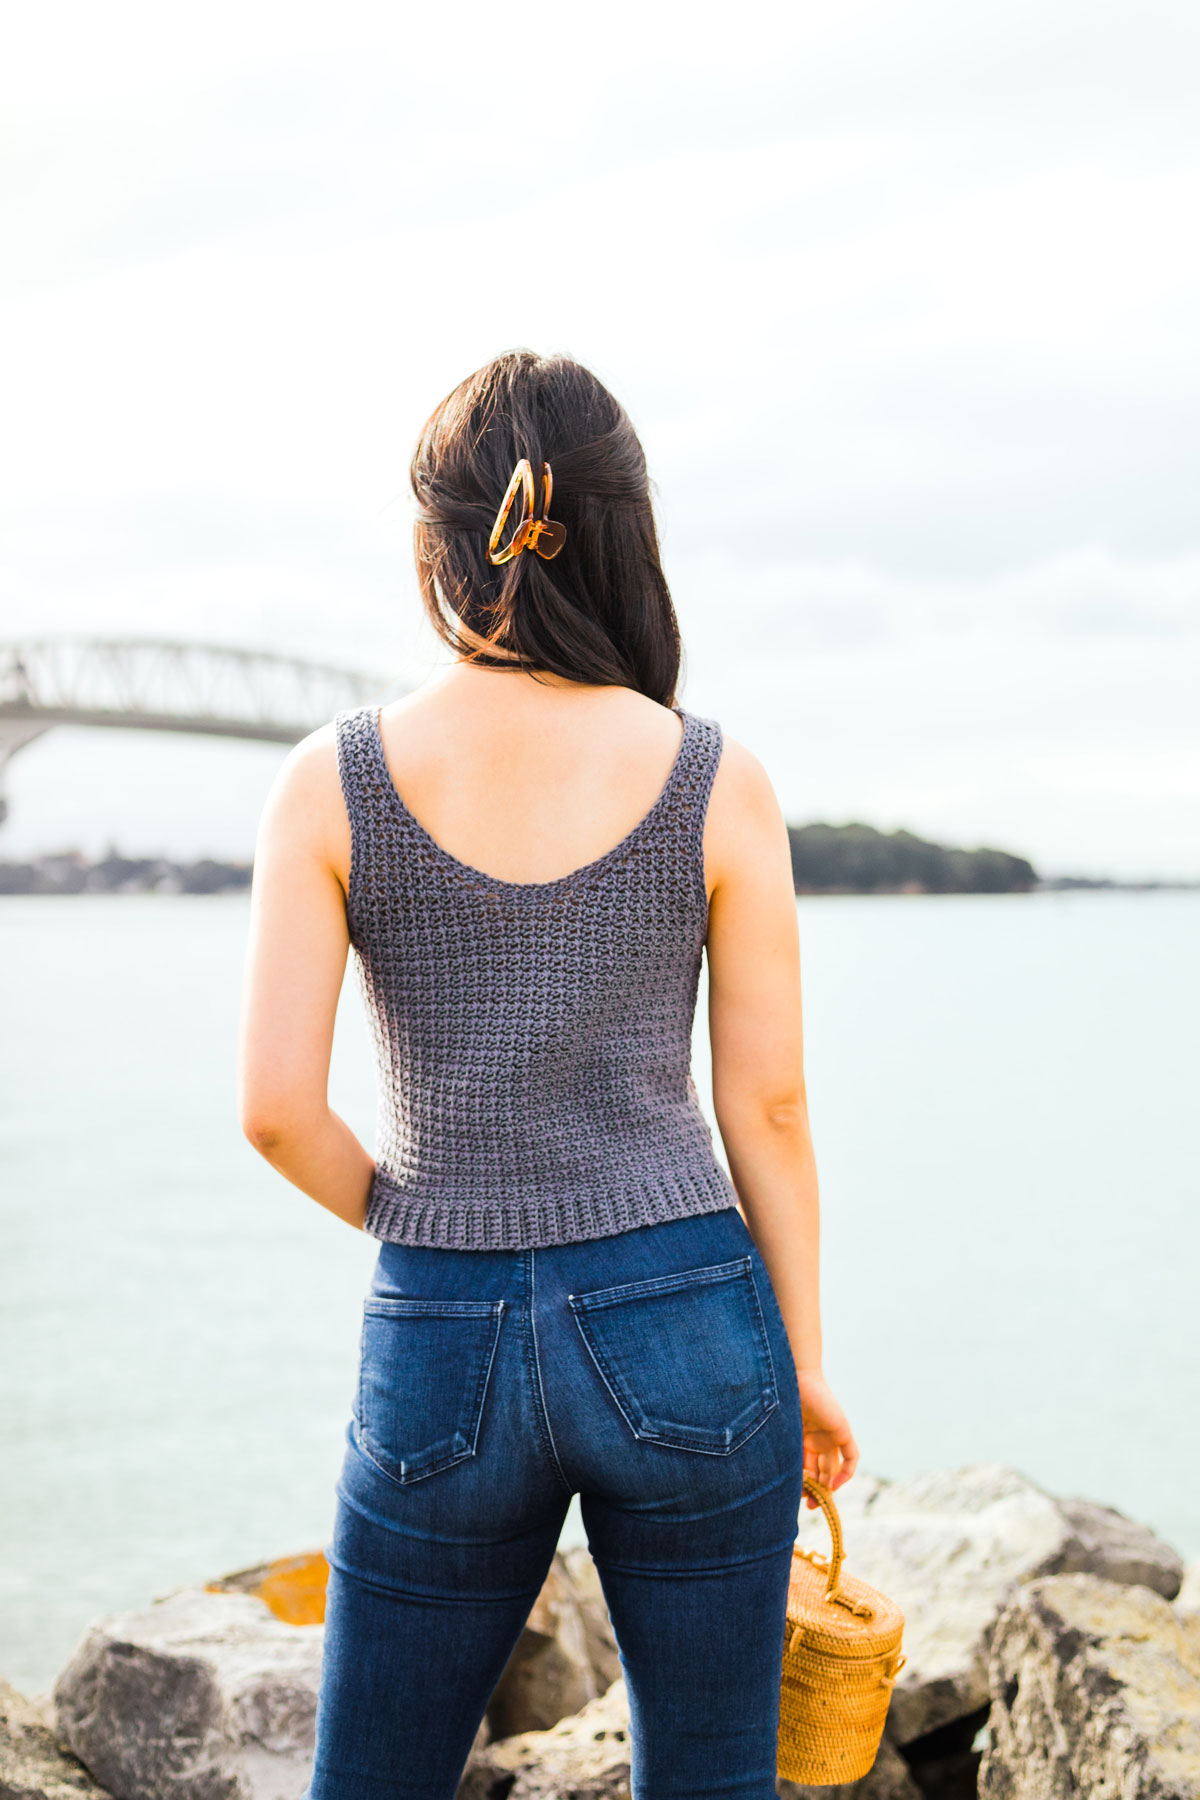 back view of model wearing grey mesh tank top with claw clip in hair